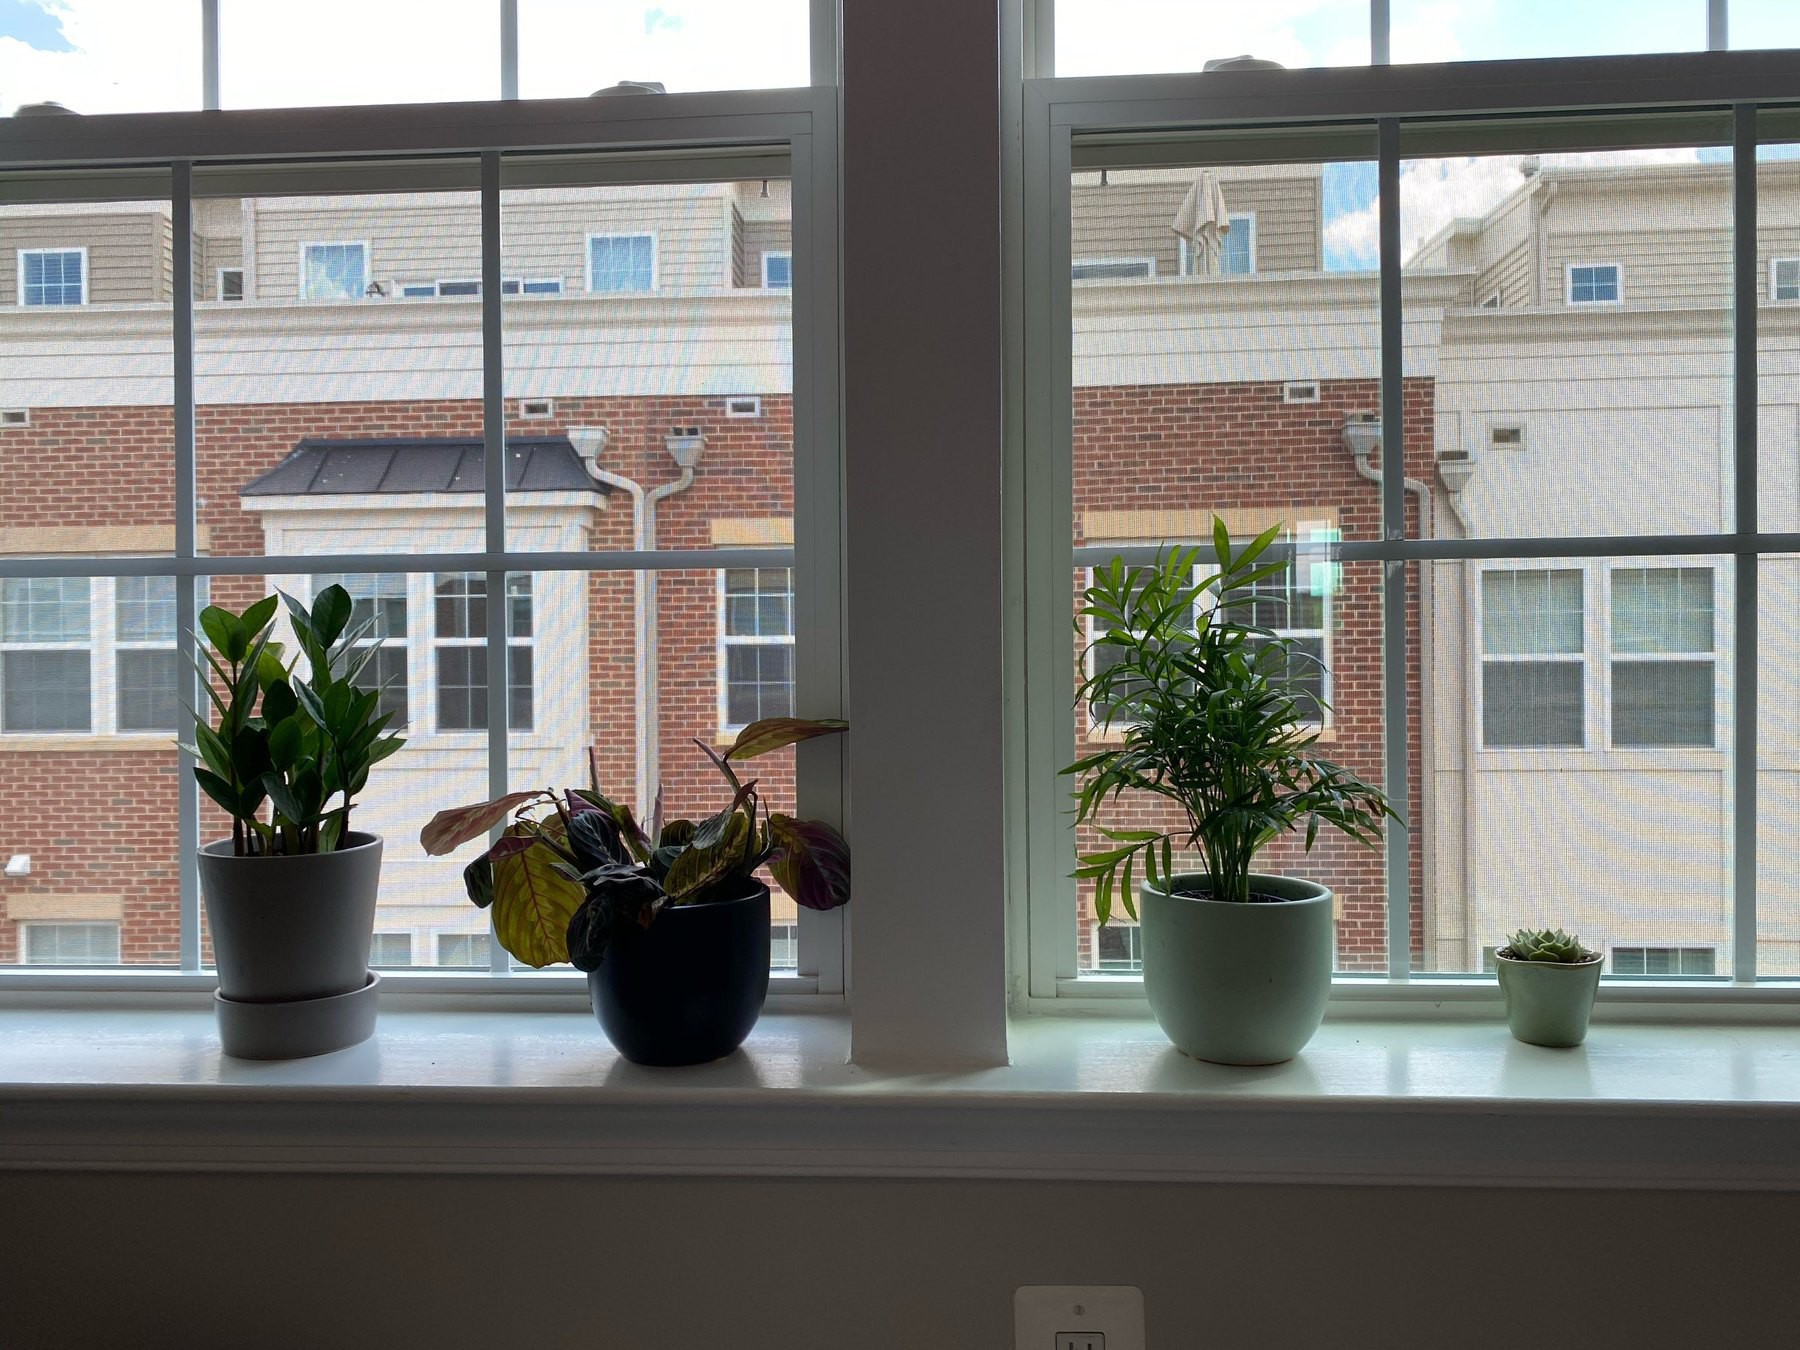 Four potted plants in a window sill. From left to right, ZZ plant, prayer plant, parlor palm, and succulent